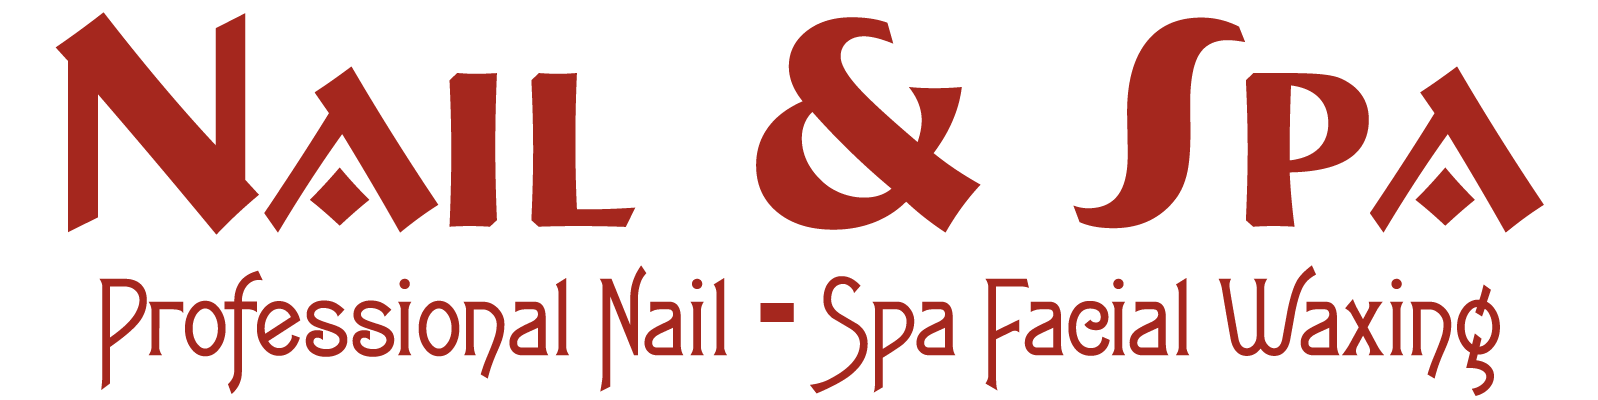 Contact Nail & Spa - Best Nail salon in Virginia Beach VA 23464